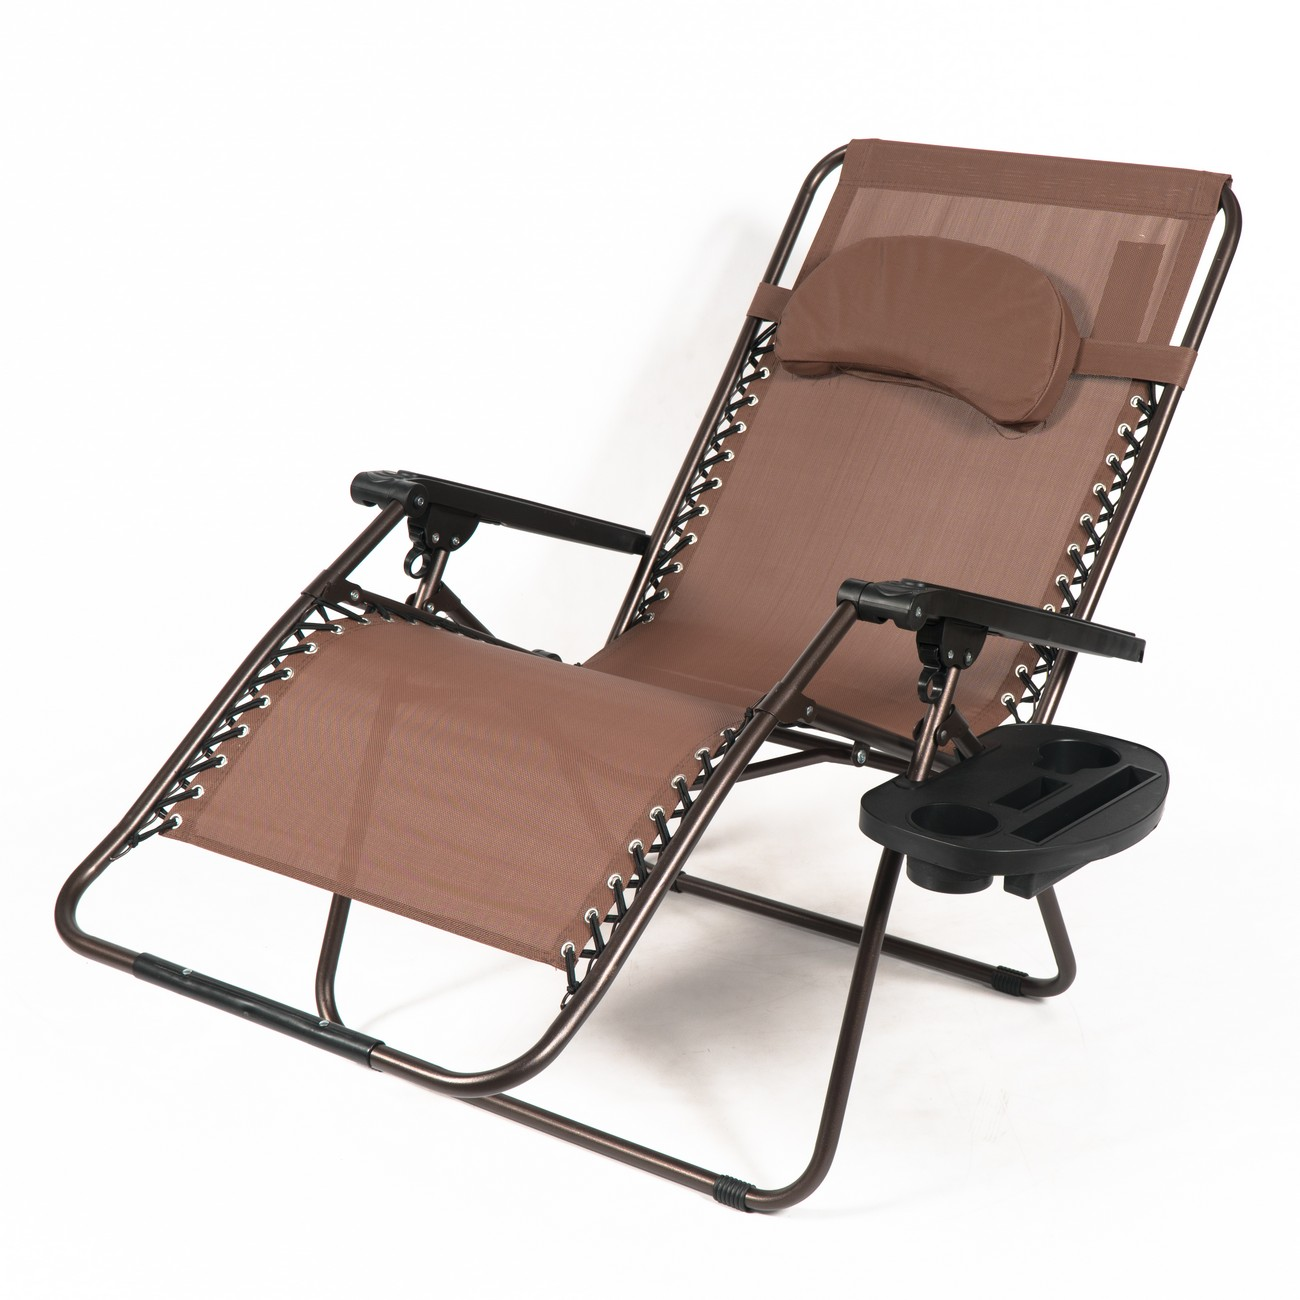 Oversized xl padded zero gravity chairs folding recliner lounge w tray 3 color ebay - Oversized zero gravity lounge chair ...